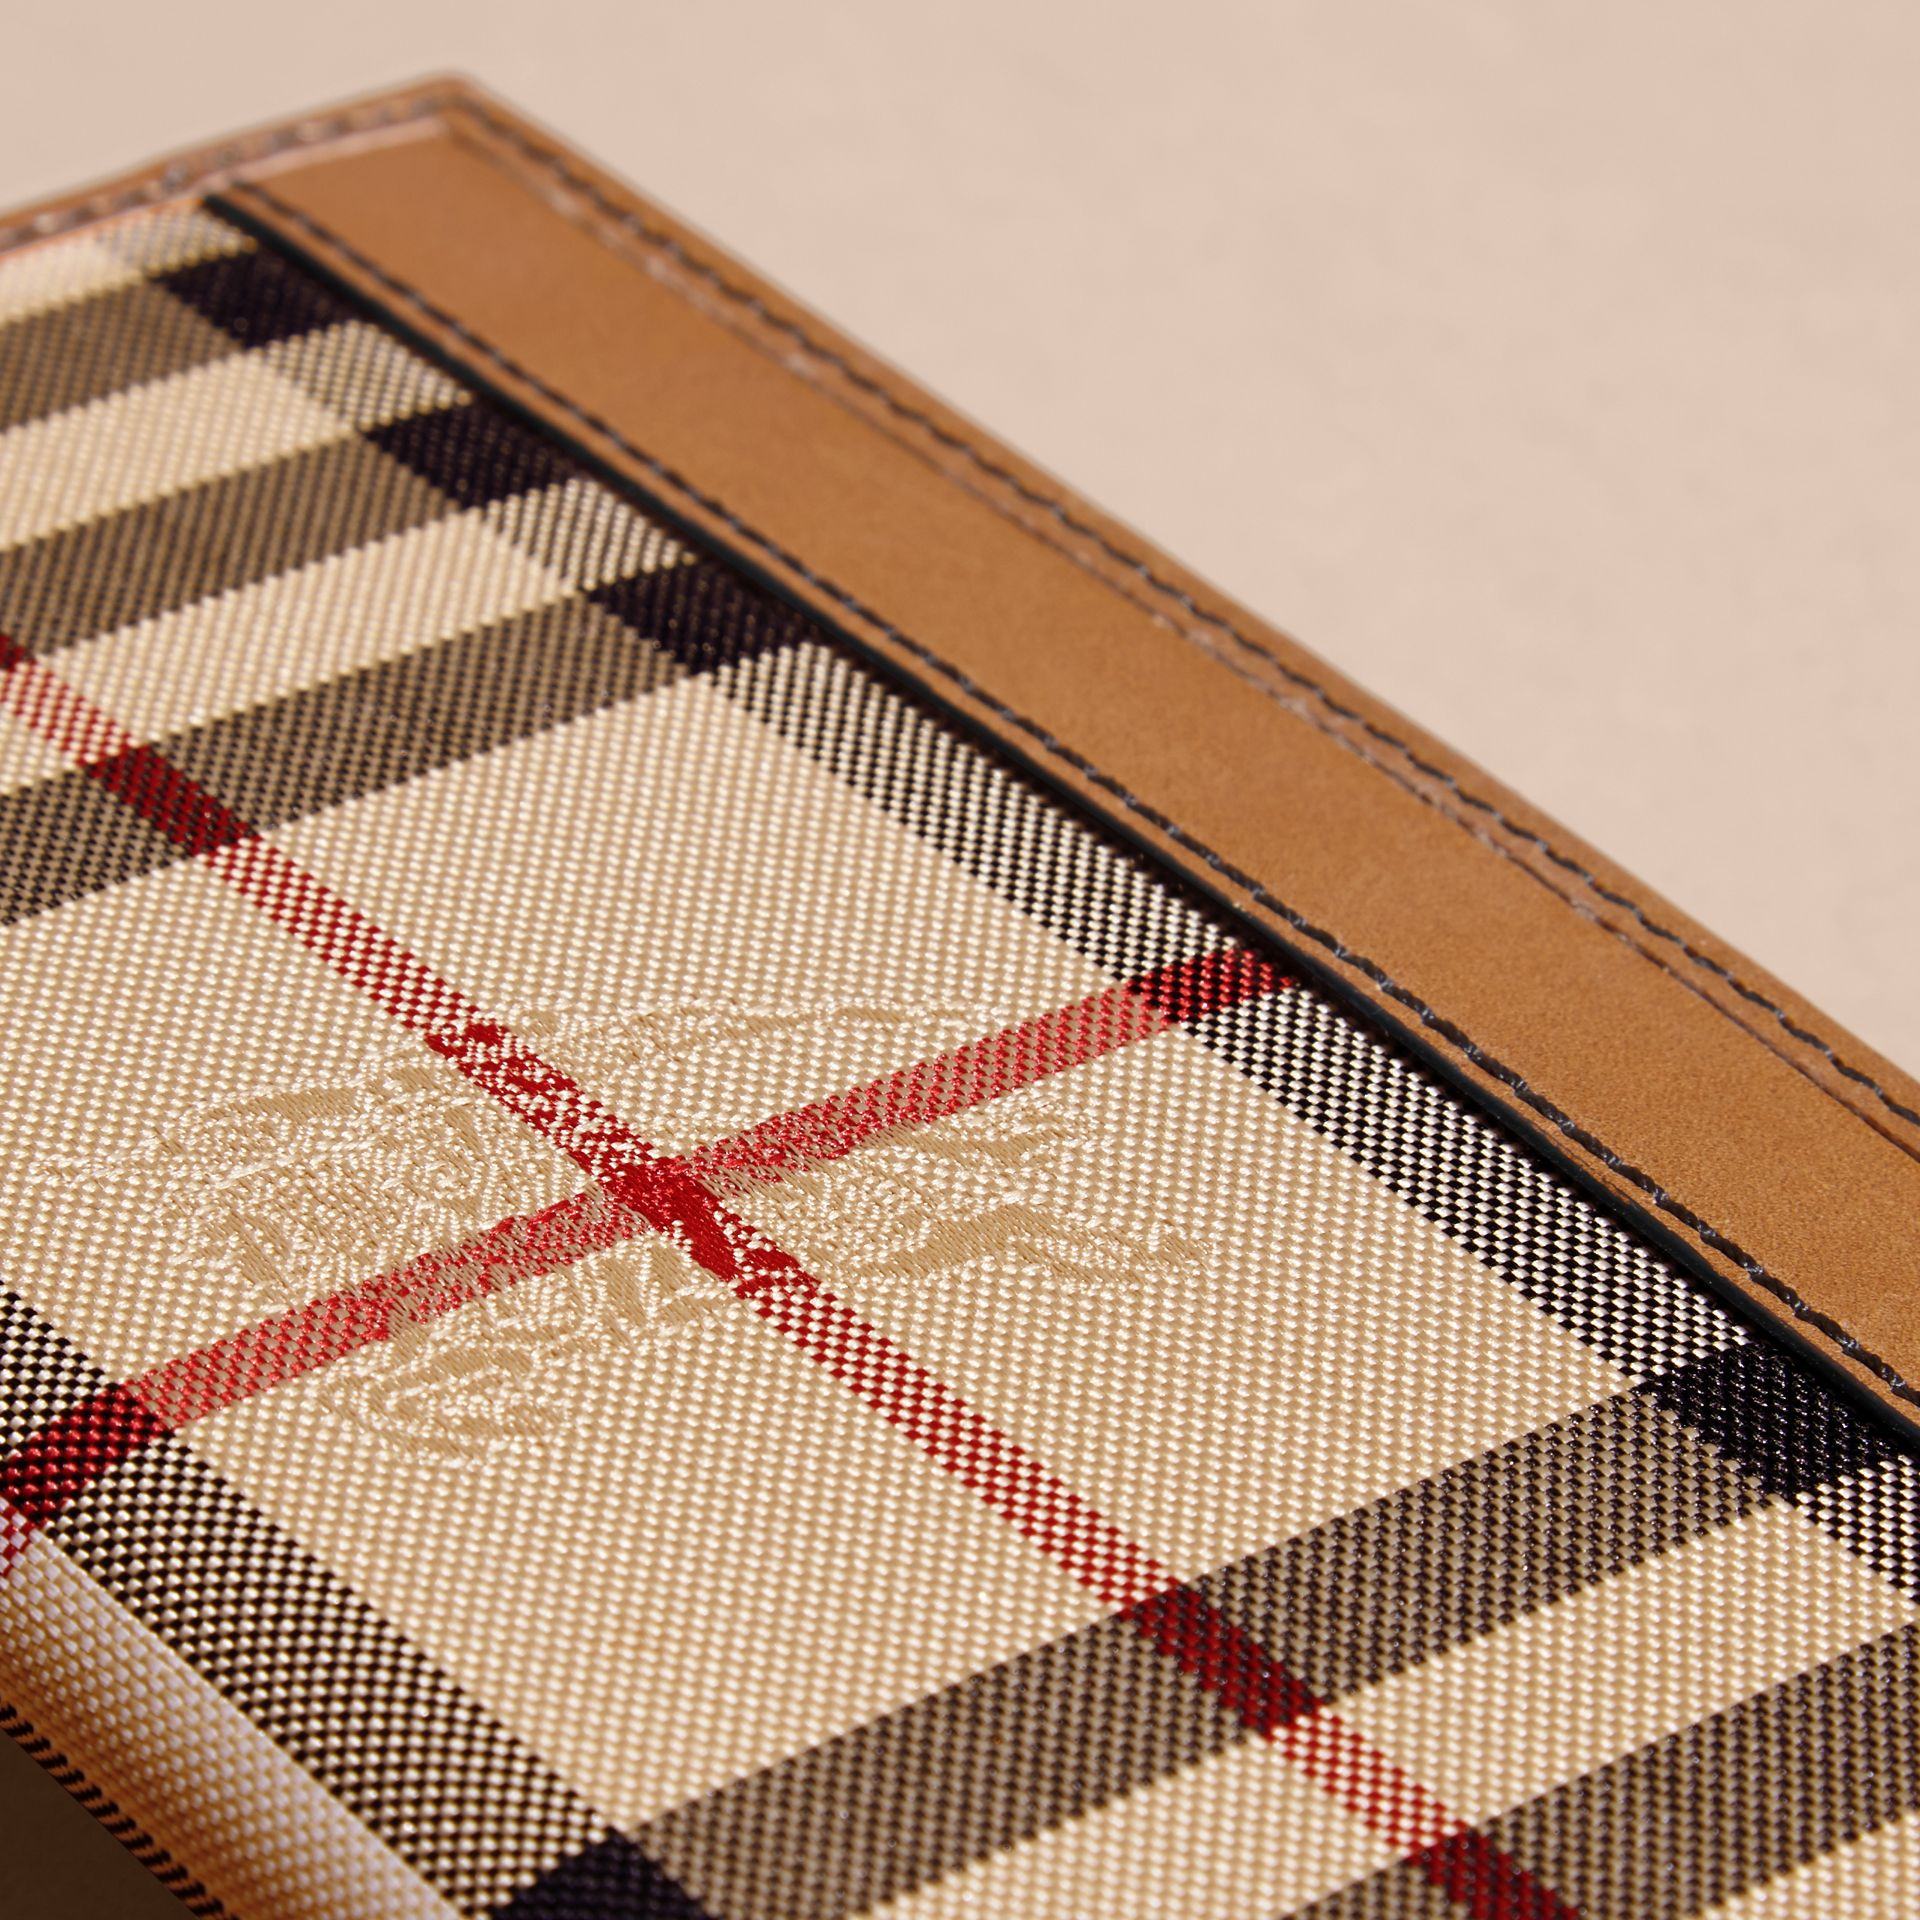 Small Horseferry Check Currency Wallet in Tan - Men | Burberry Canada - gallery image 2